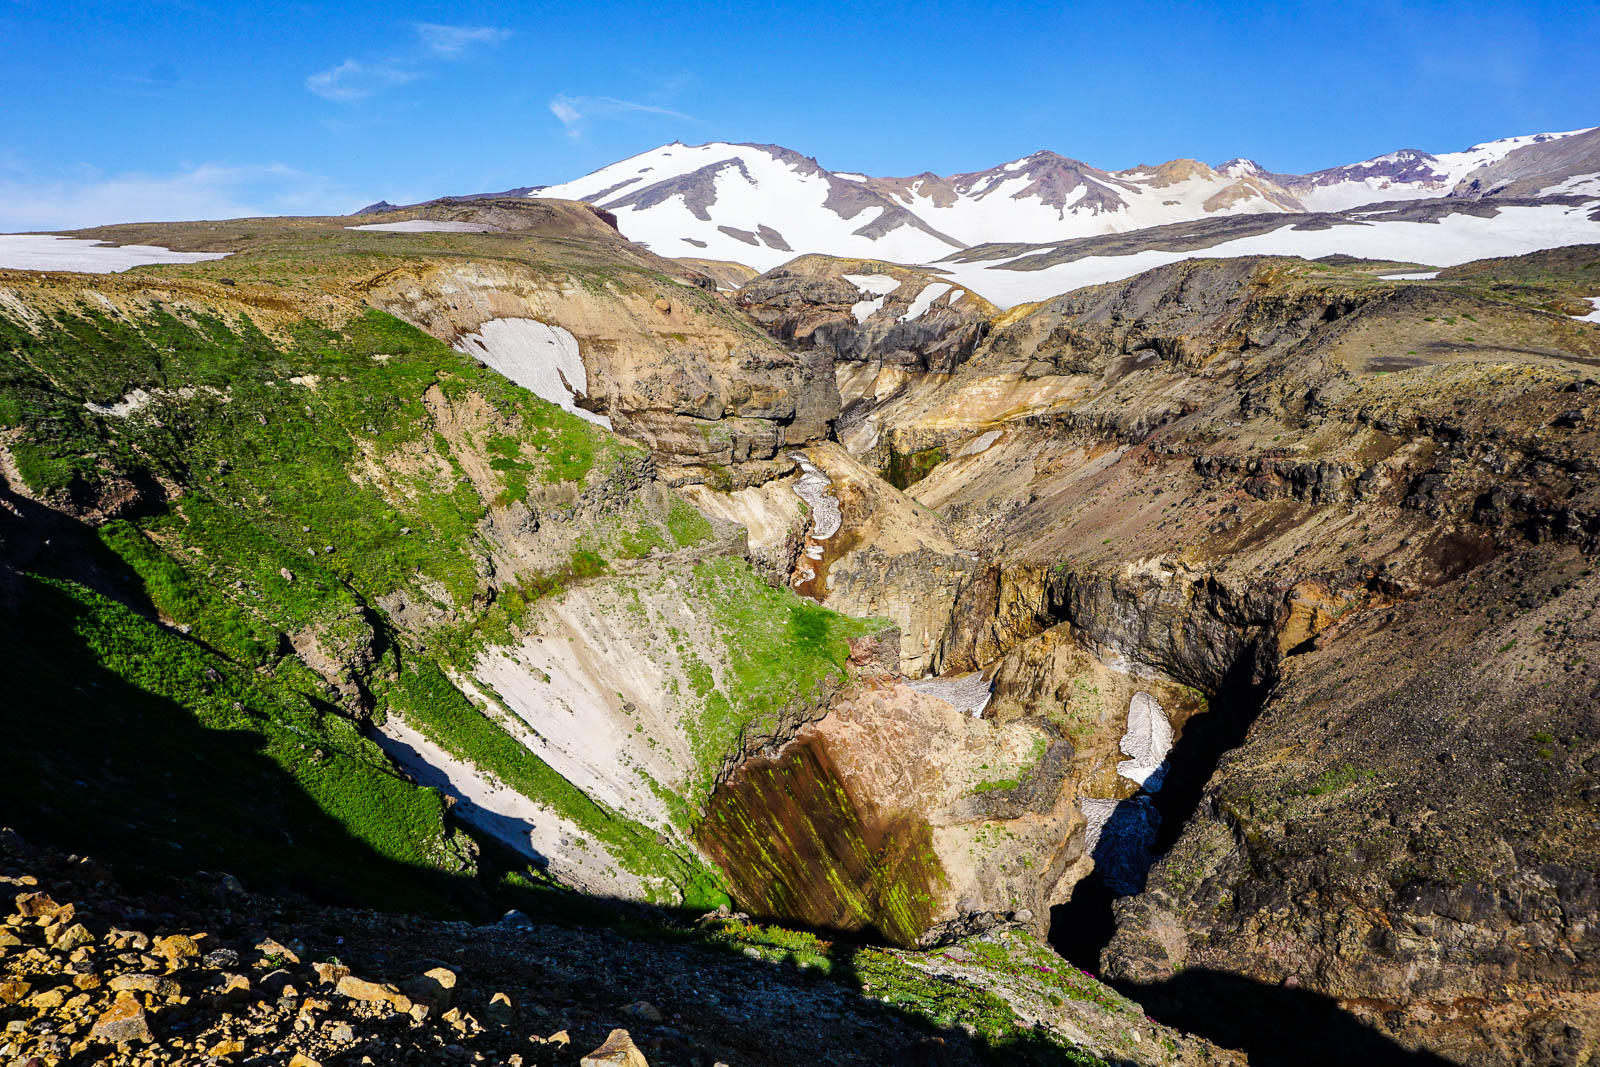 kamchatka-2015-volcanoes-34